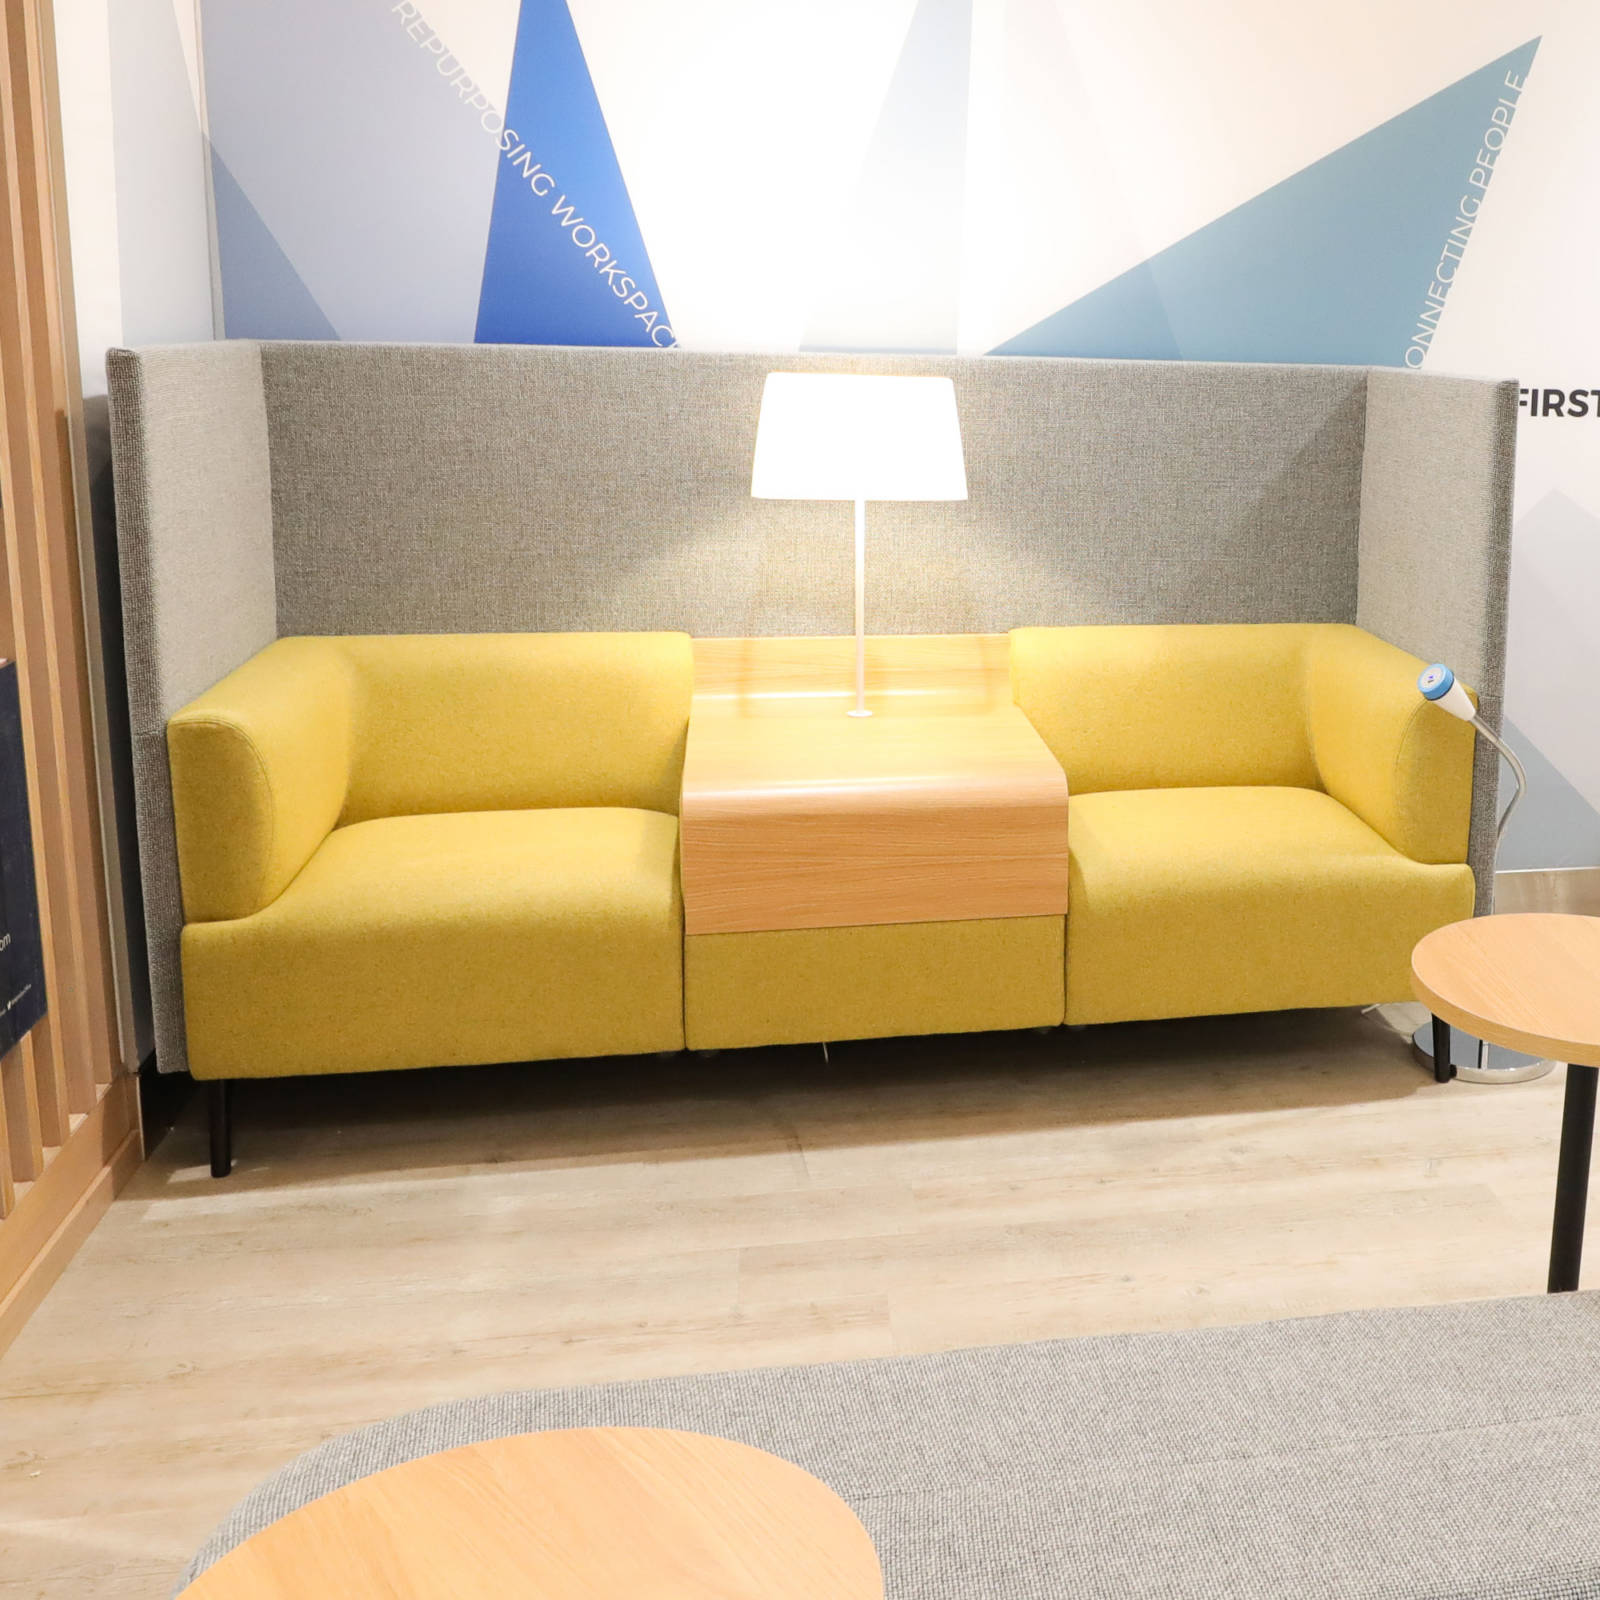 yellow sofa with high grey back at belfast city airport